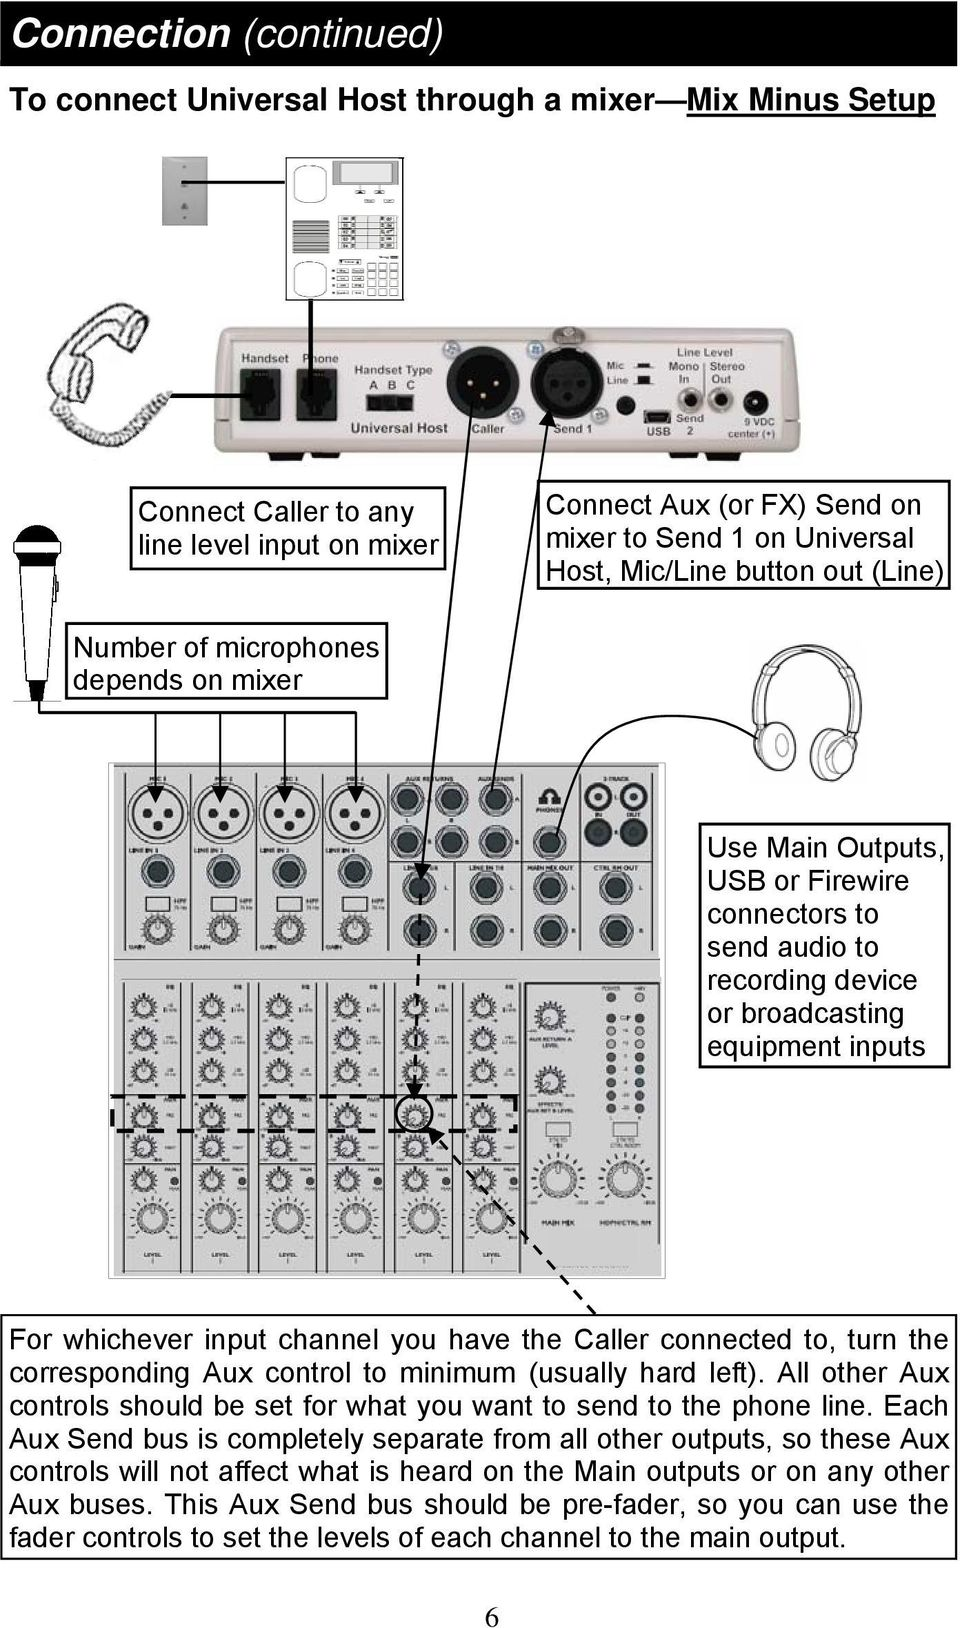 channel you have the Caller connected to, turn the corresponding Aux control to minimum (usually hard left). All other Aux controls should be set for what you want to send to the phone line.